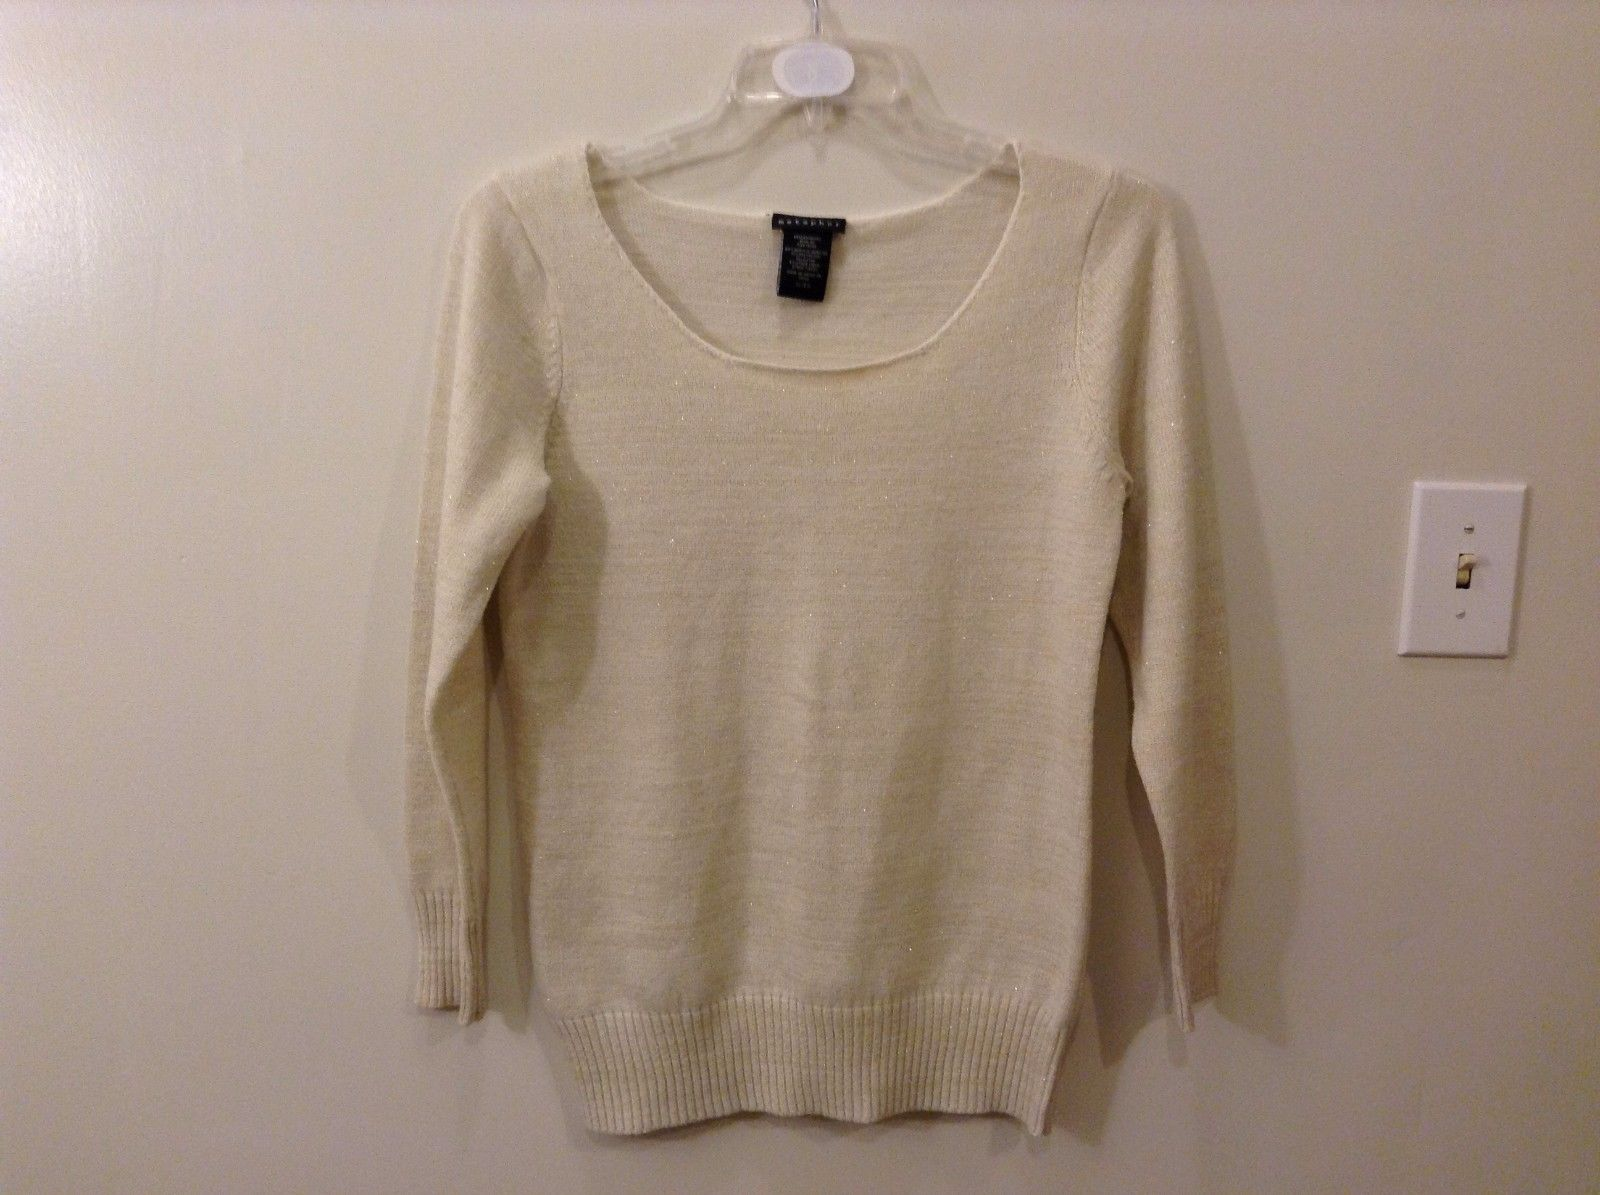 Metaphor XL Champagne Gold Sparkly Sweater Great Used Condition